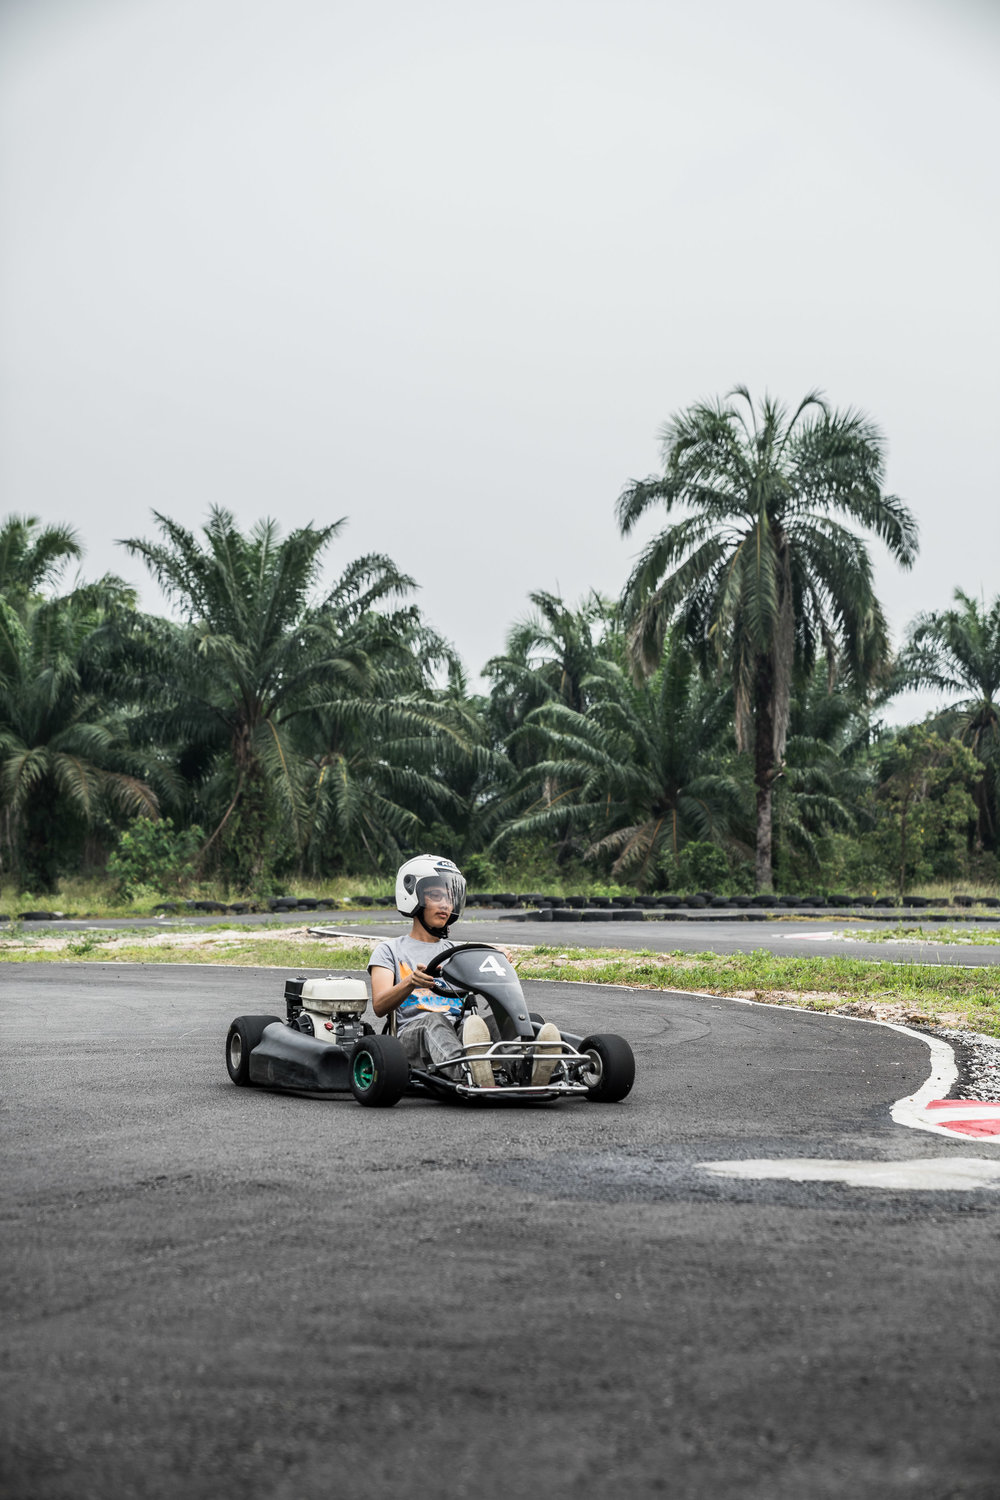 Hasif driving around the track.